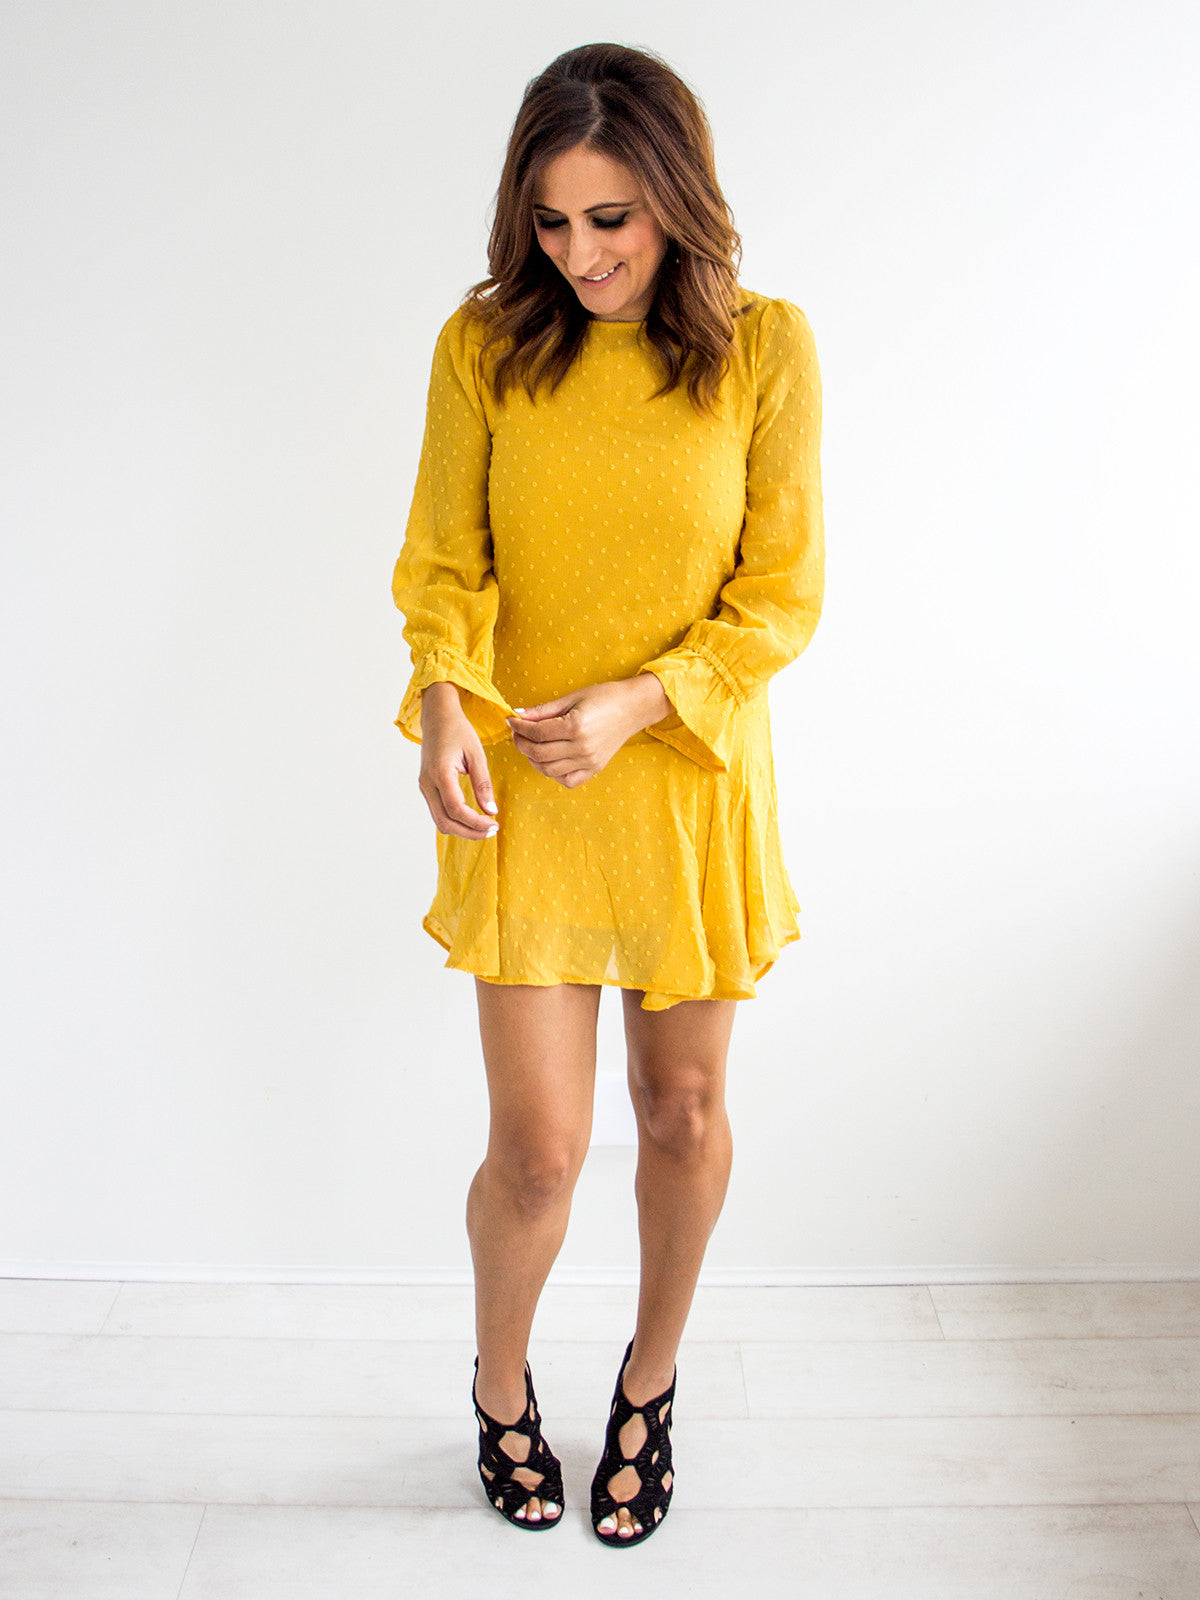 FLIPPY LANE MUSTARD FLIP MINI DRESS